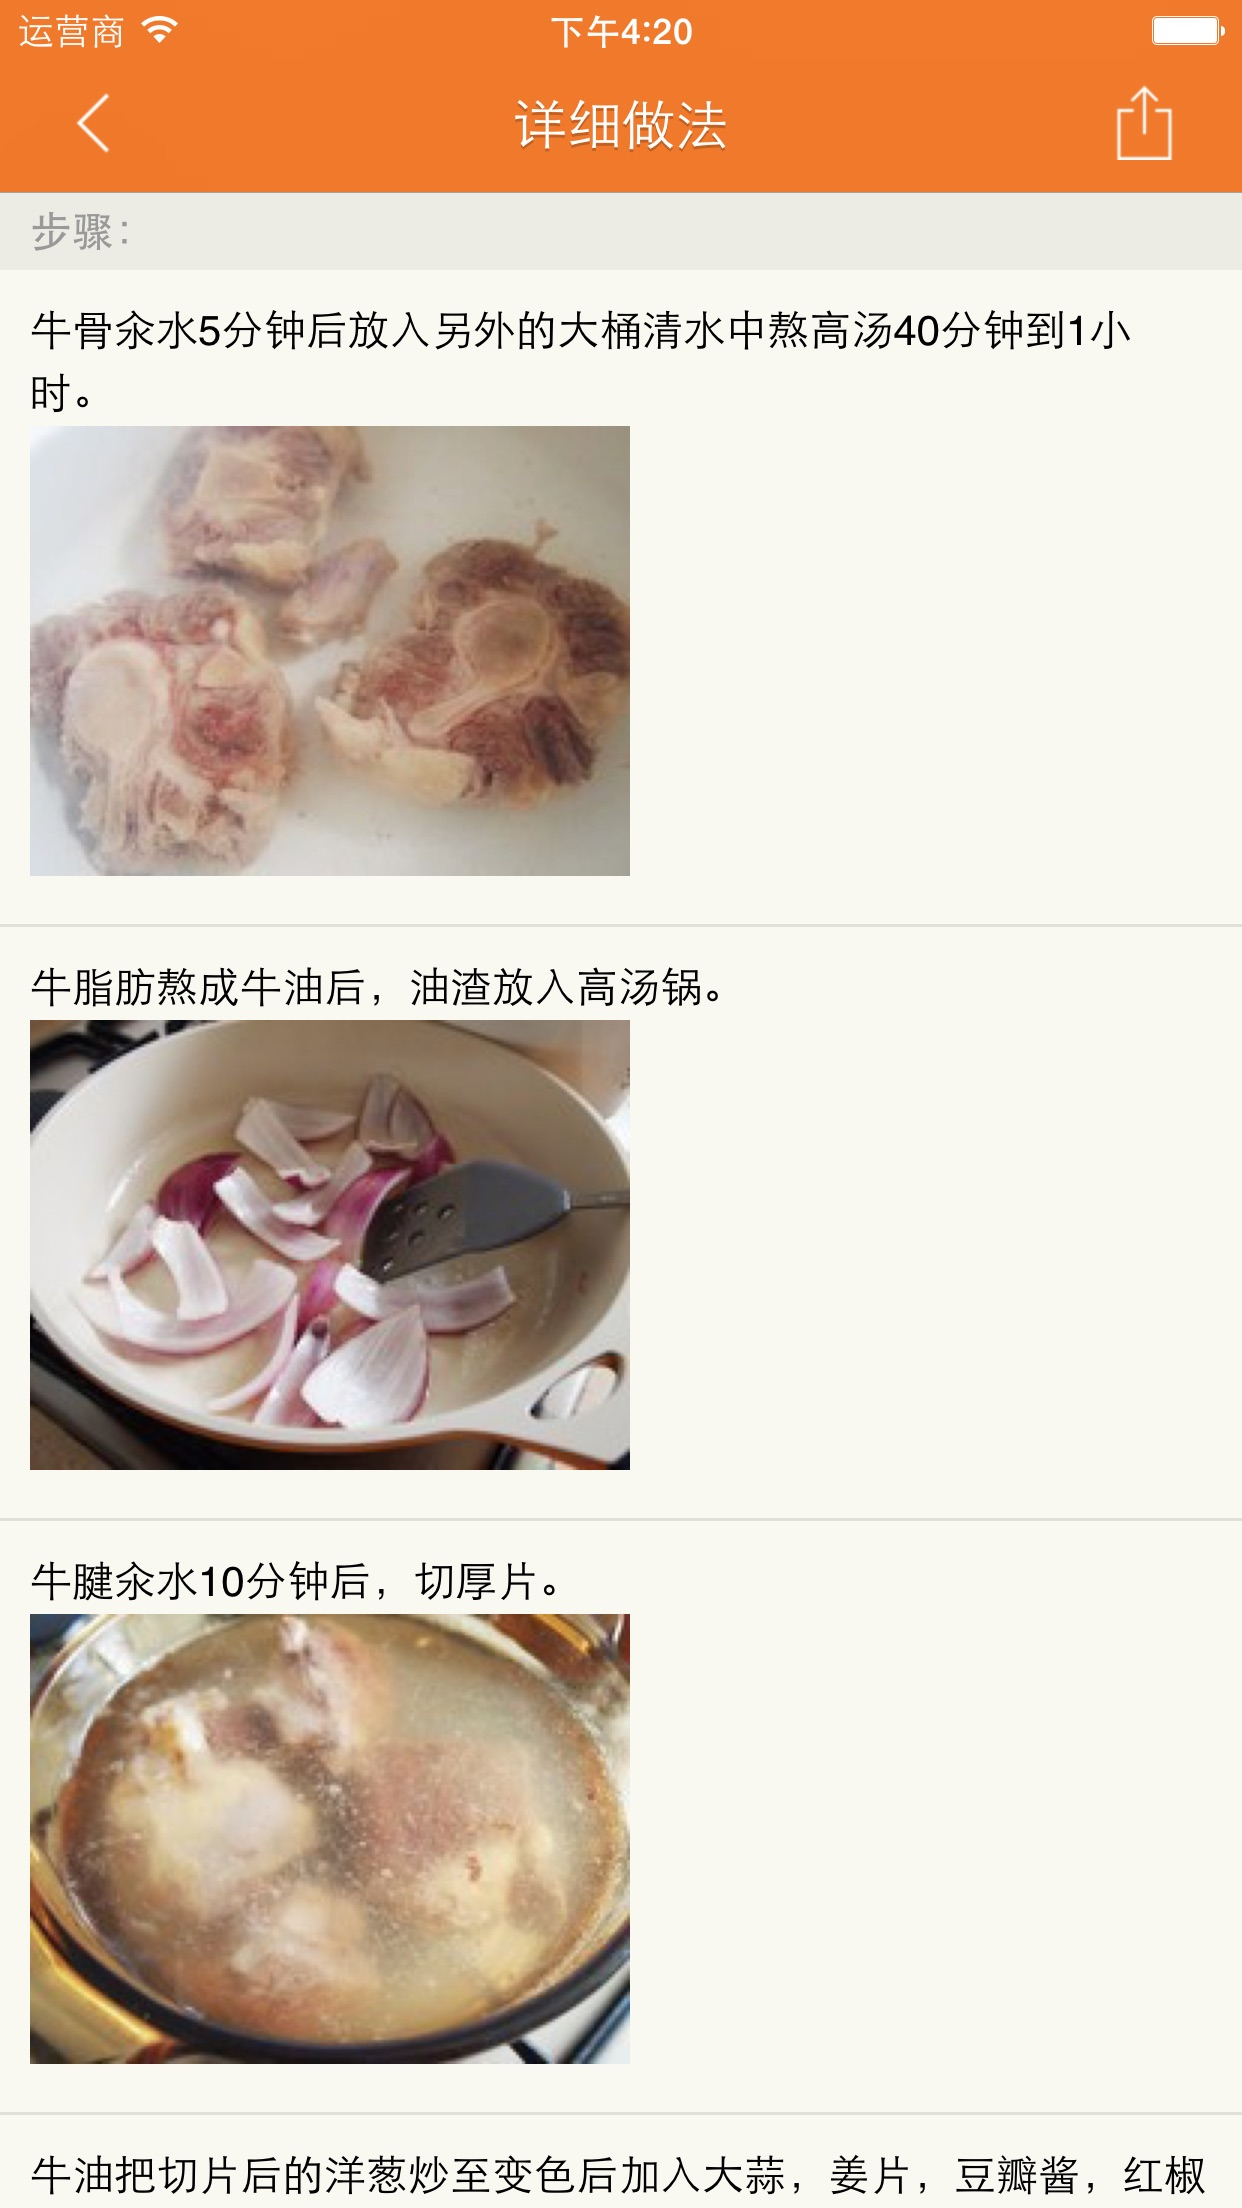 台湾美食菜谱大全 Screenshot